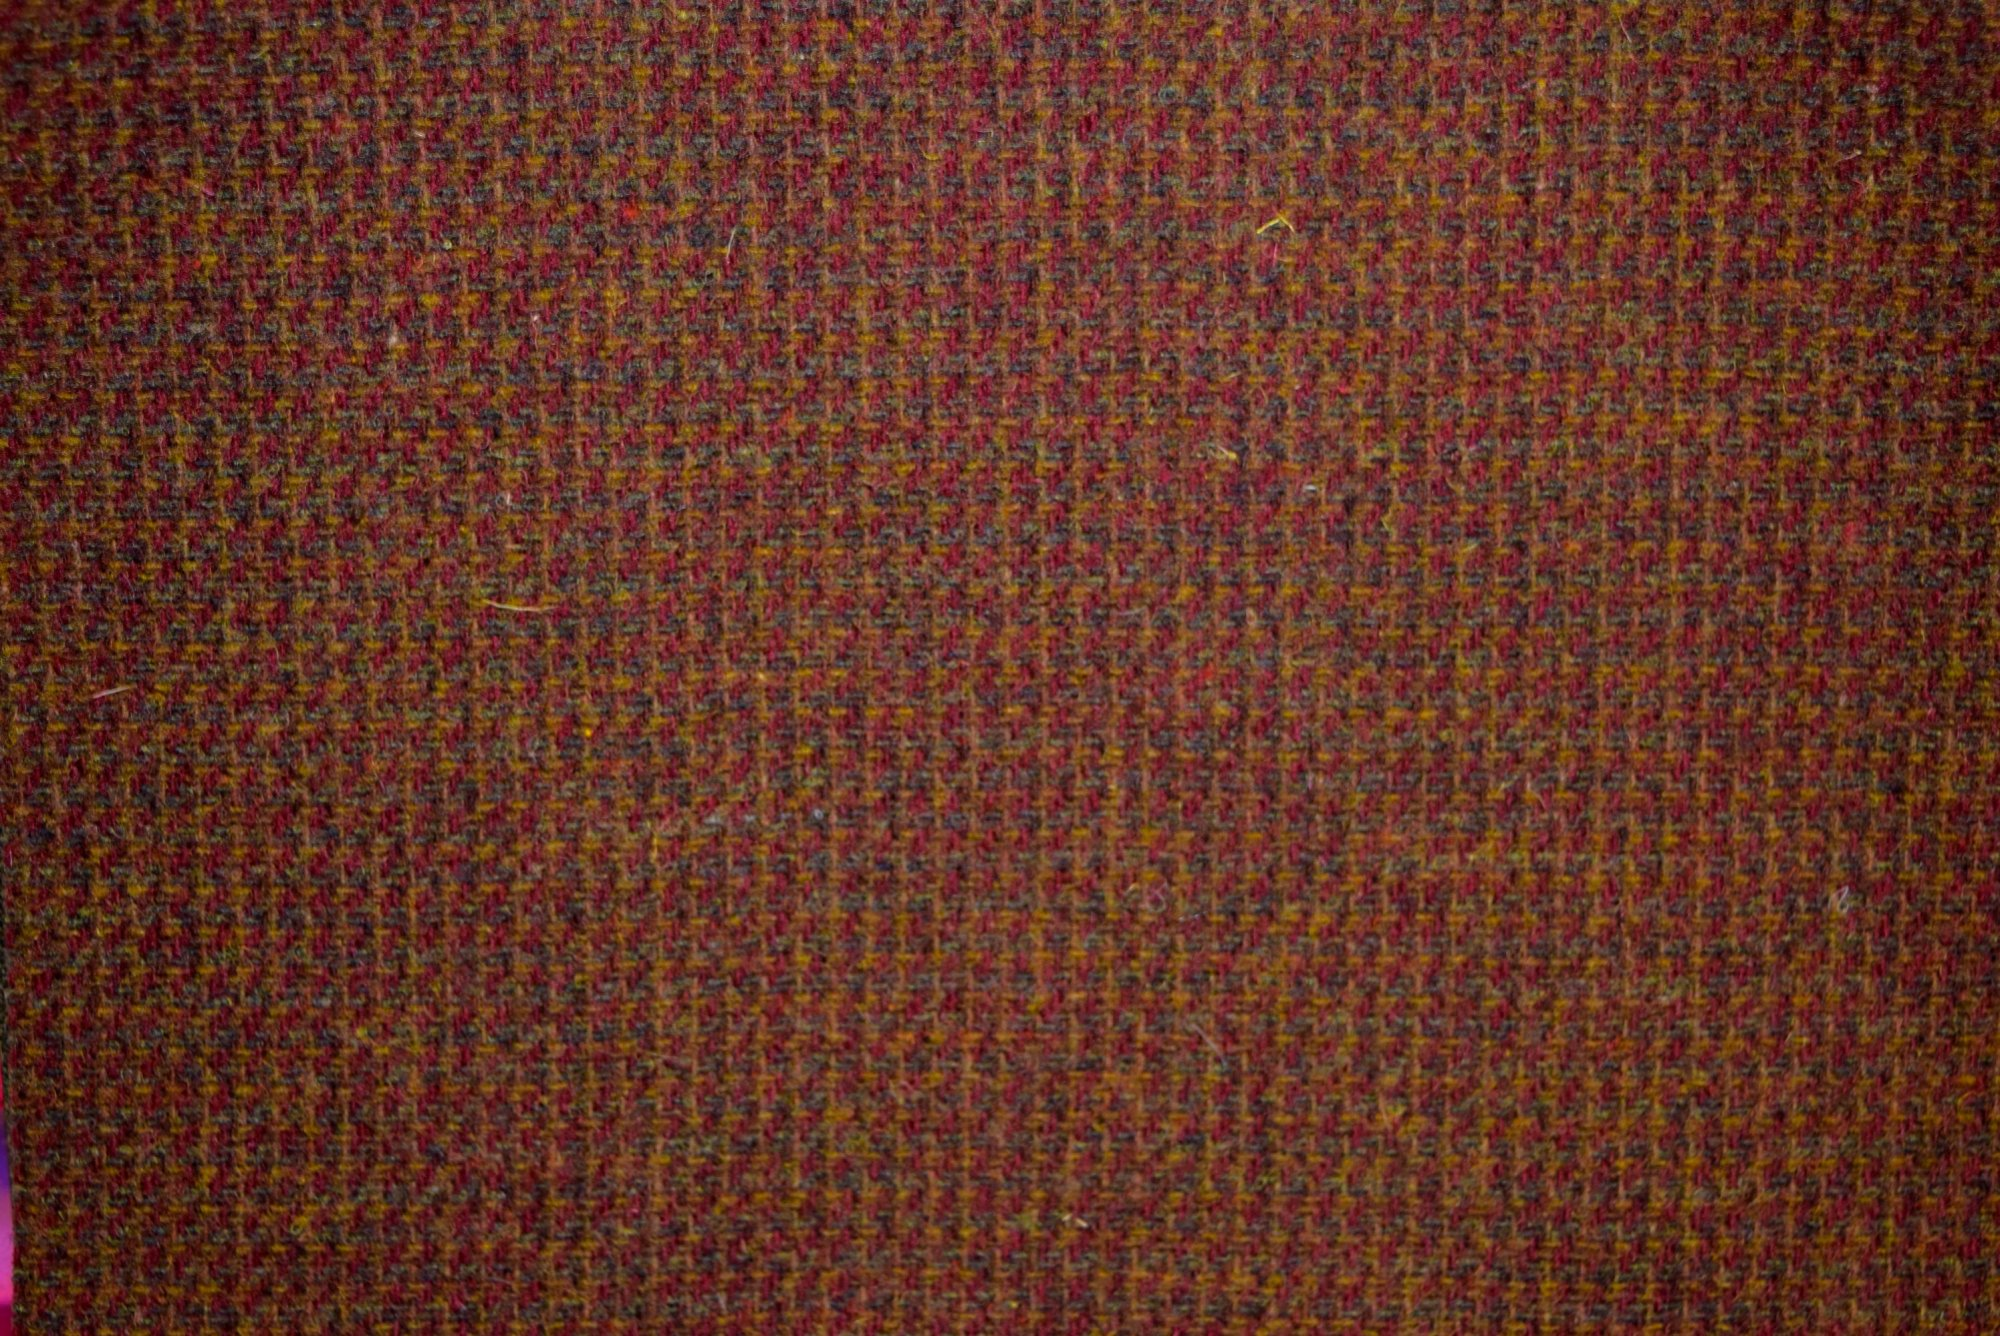 Chili Pepper 18 X 21  100% Wool